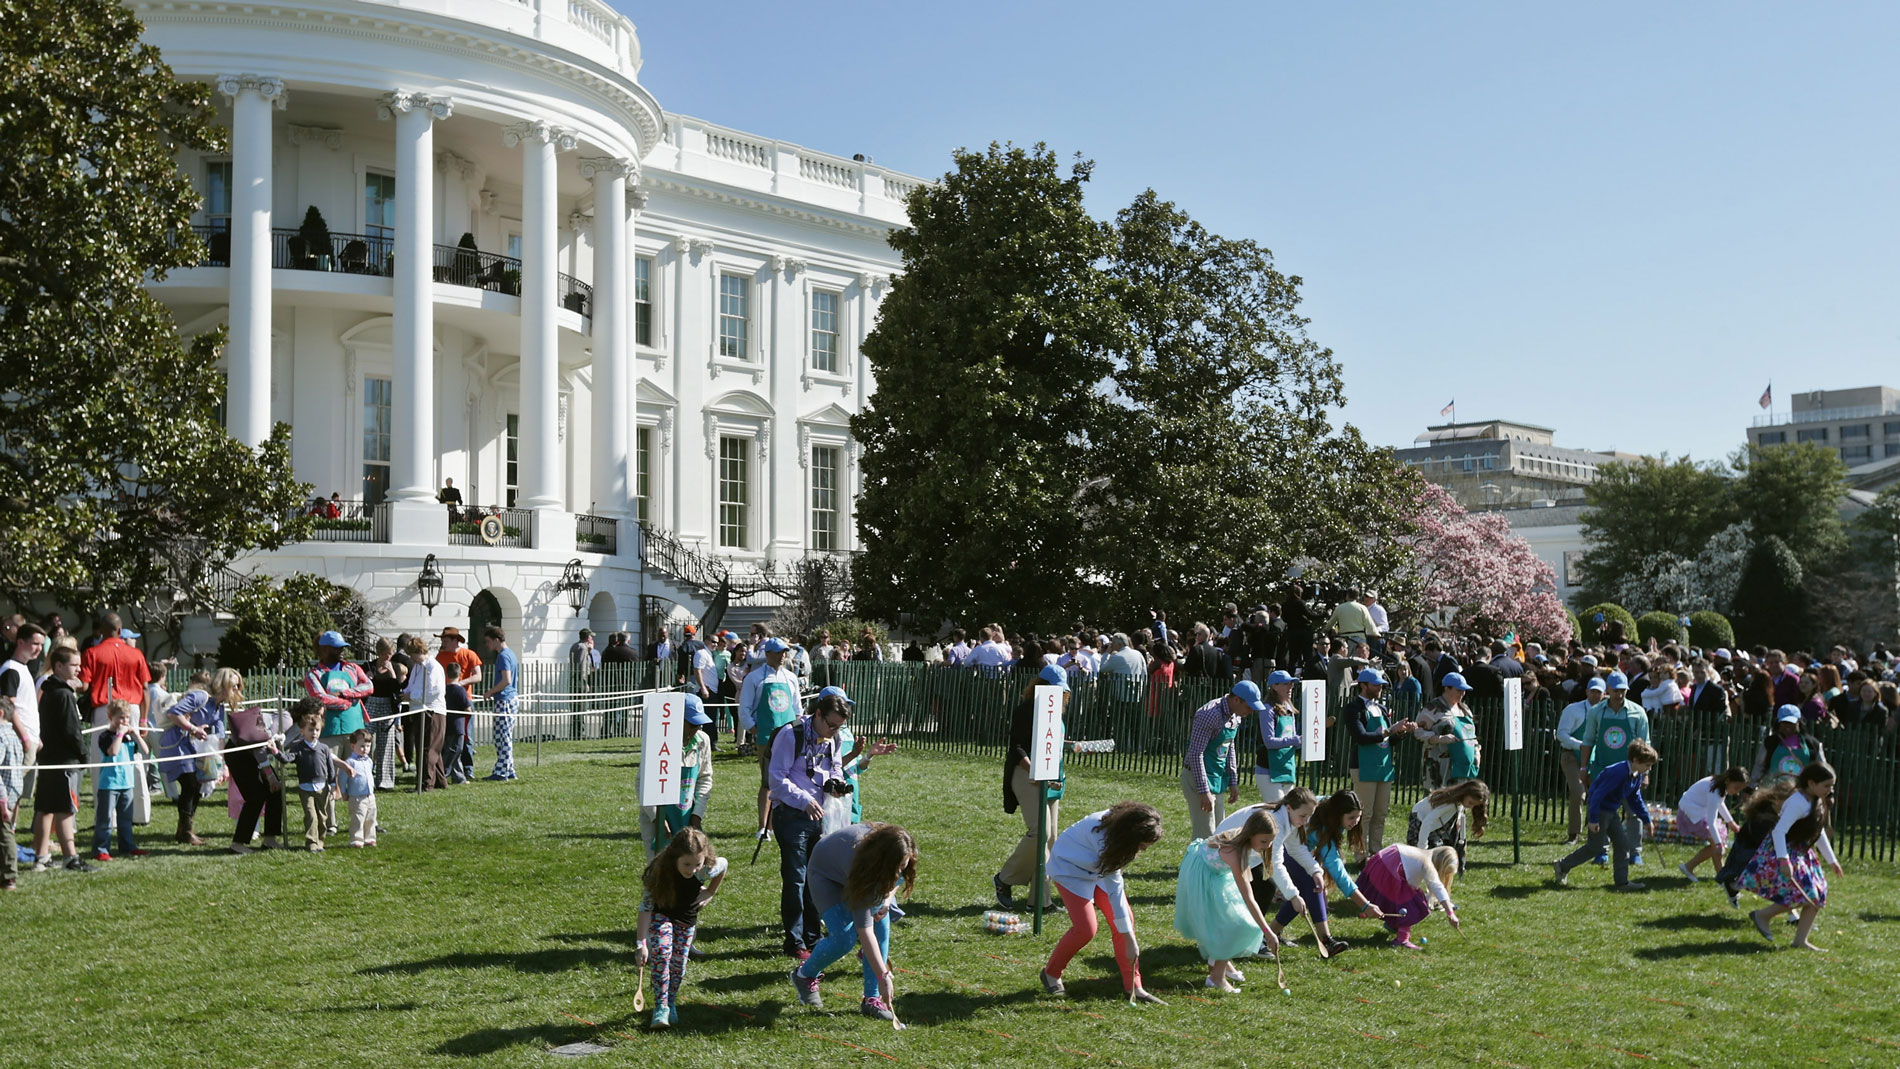 The White House Easter Egg Roll, Explained